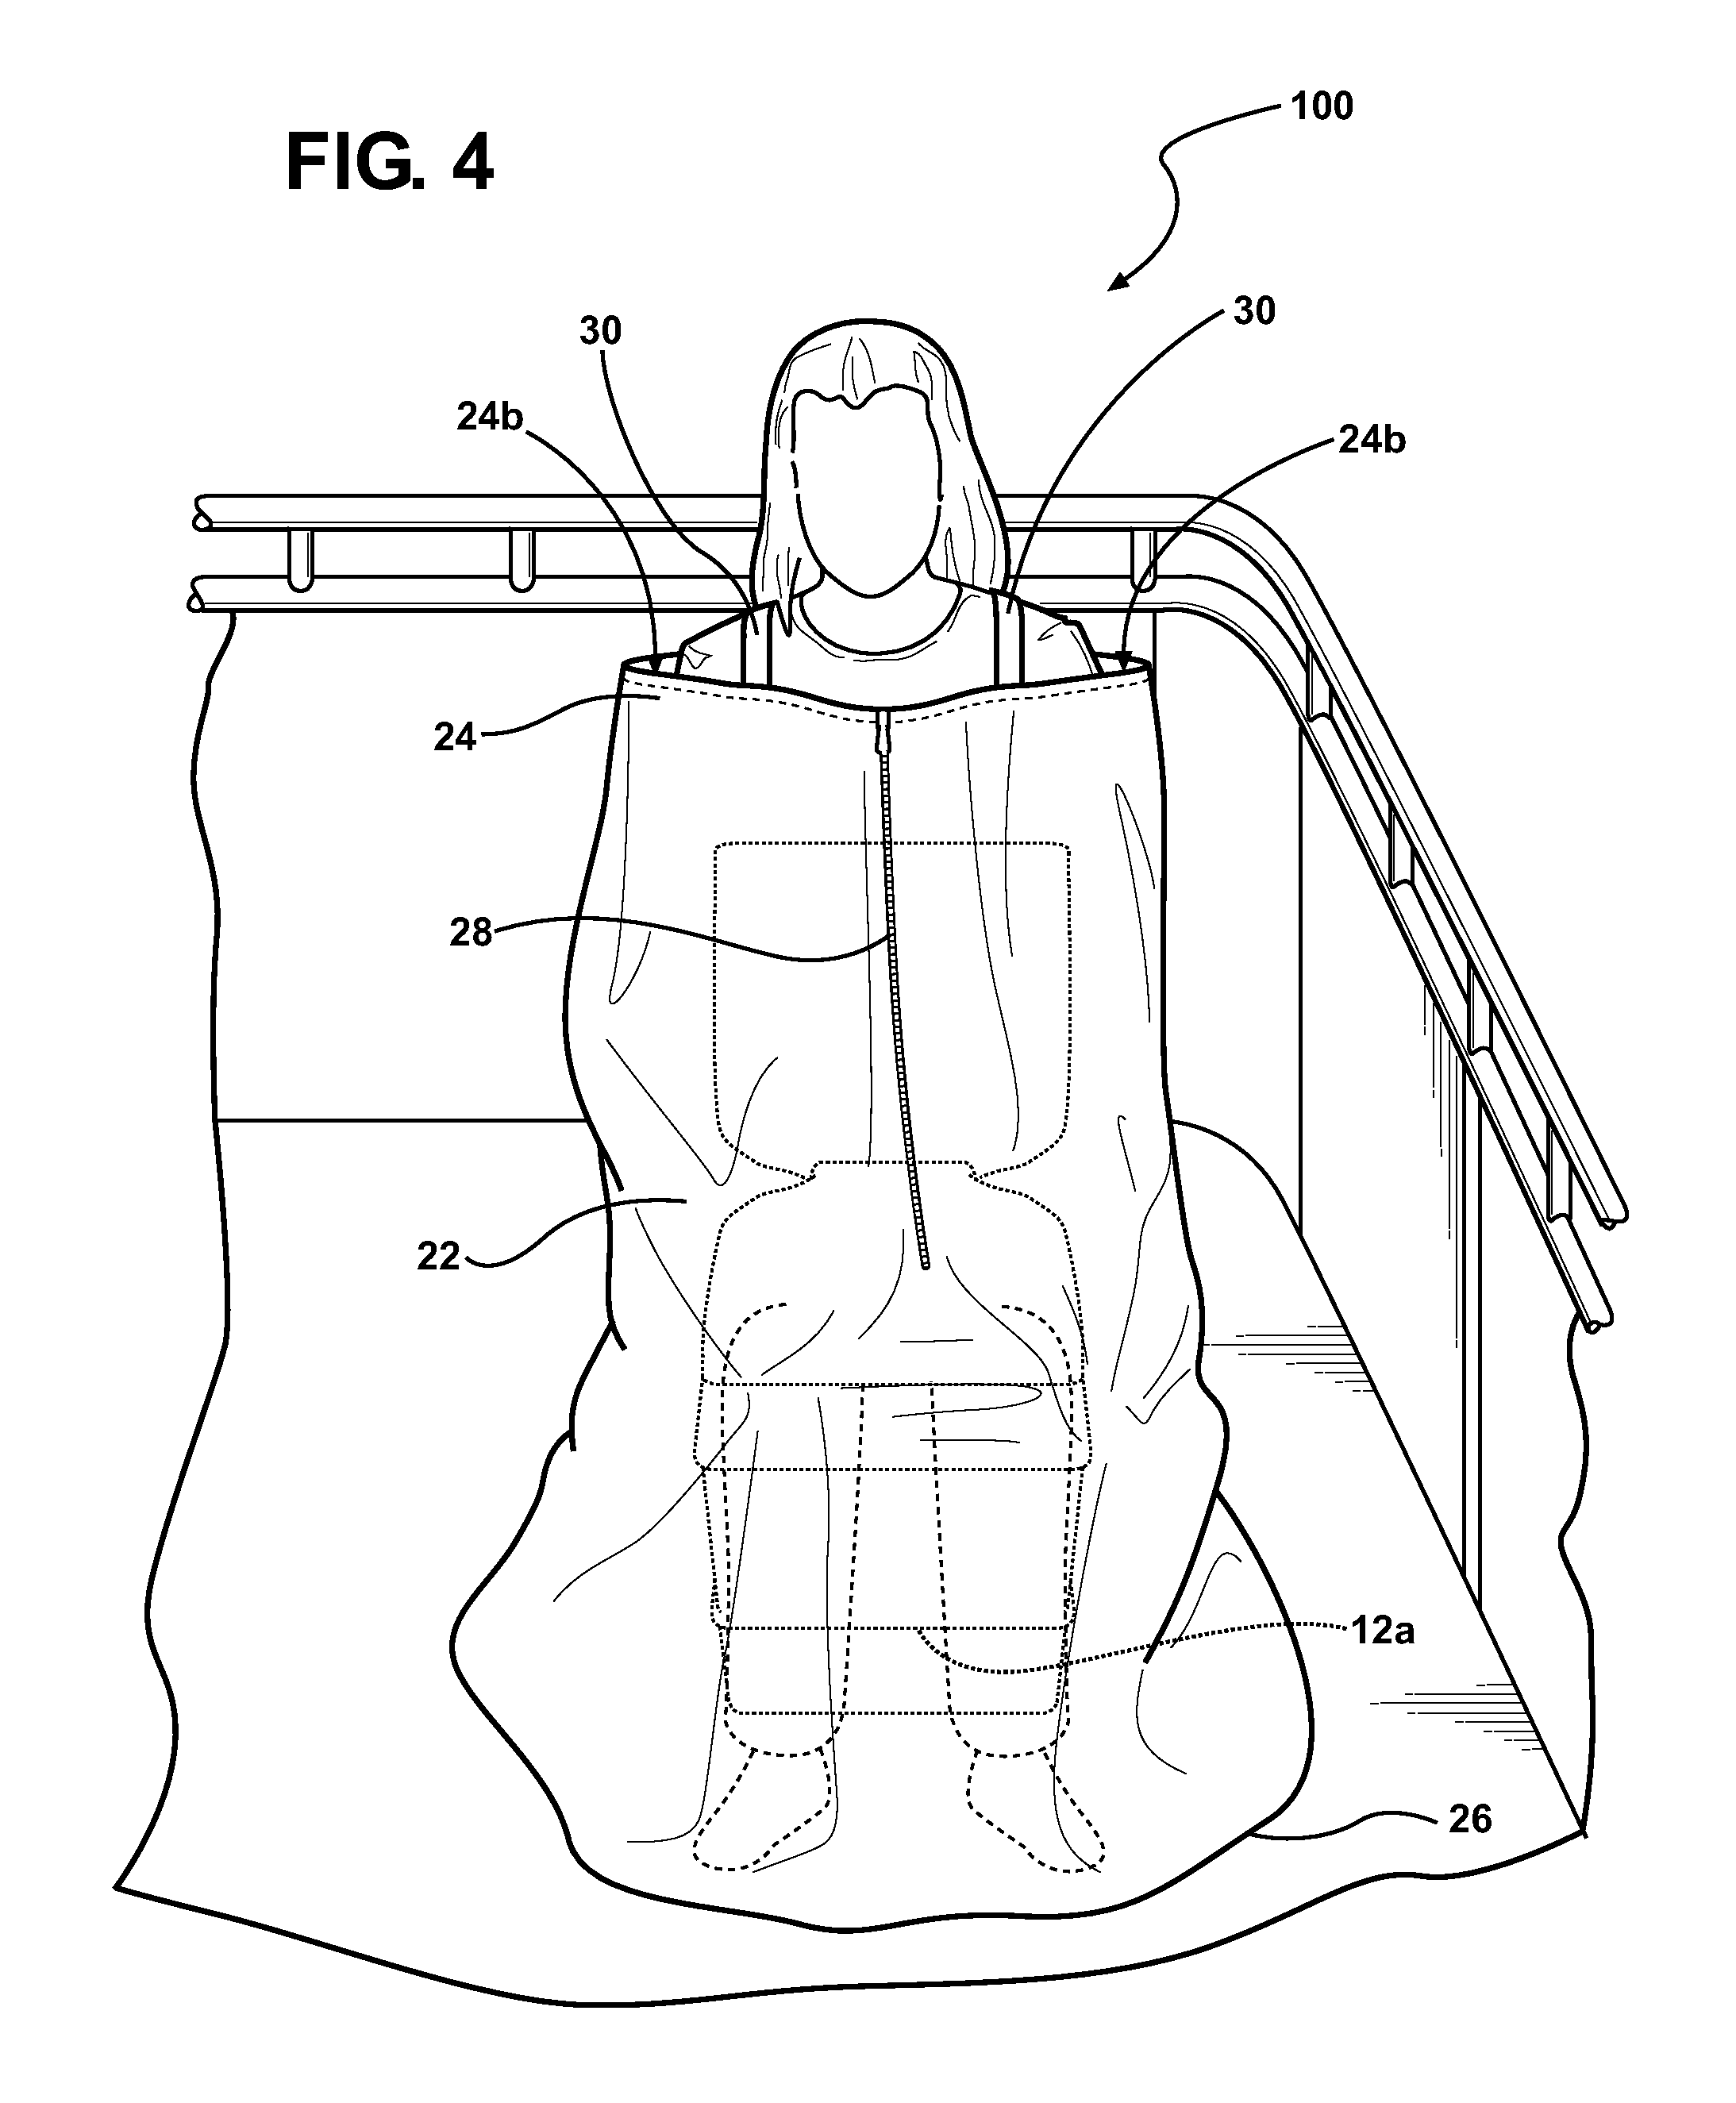 Portable privacy curtains - Patent Drawing